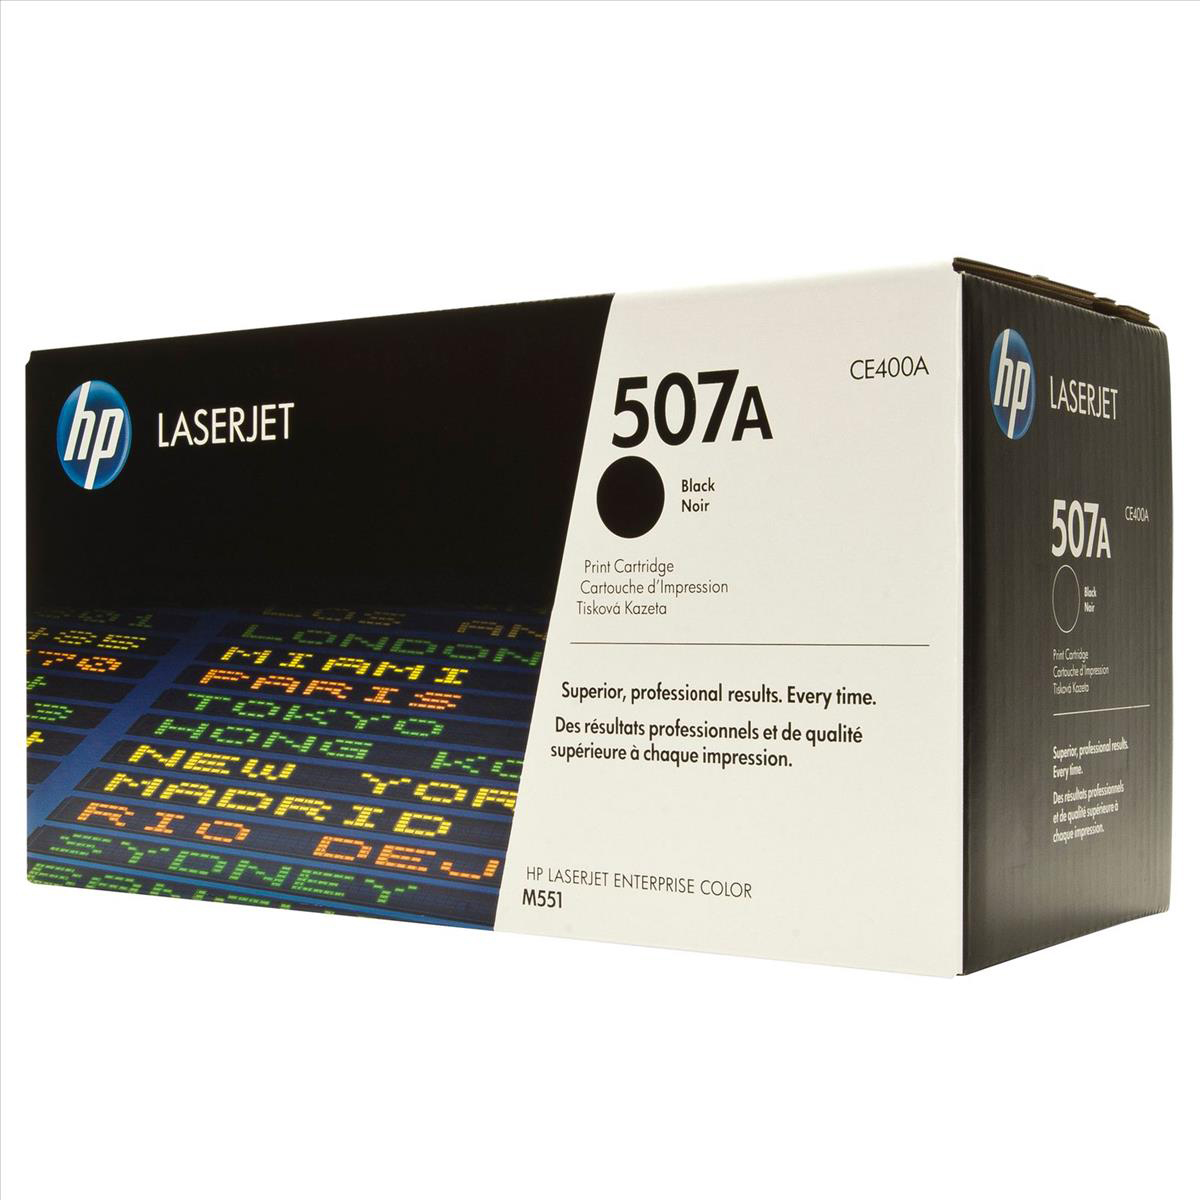 HP 507A Laser Toner Cartridge Page Life 5500pp Black Ref CE400A